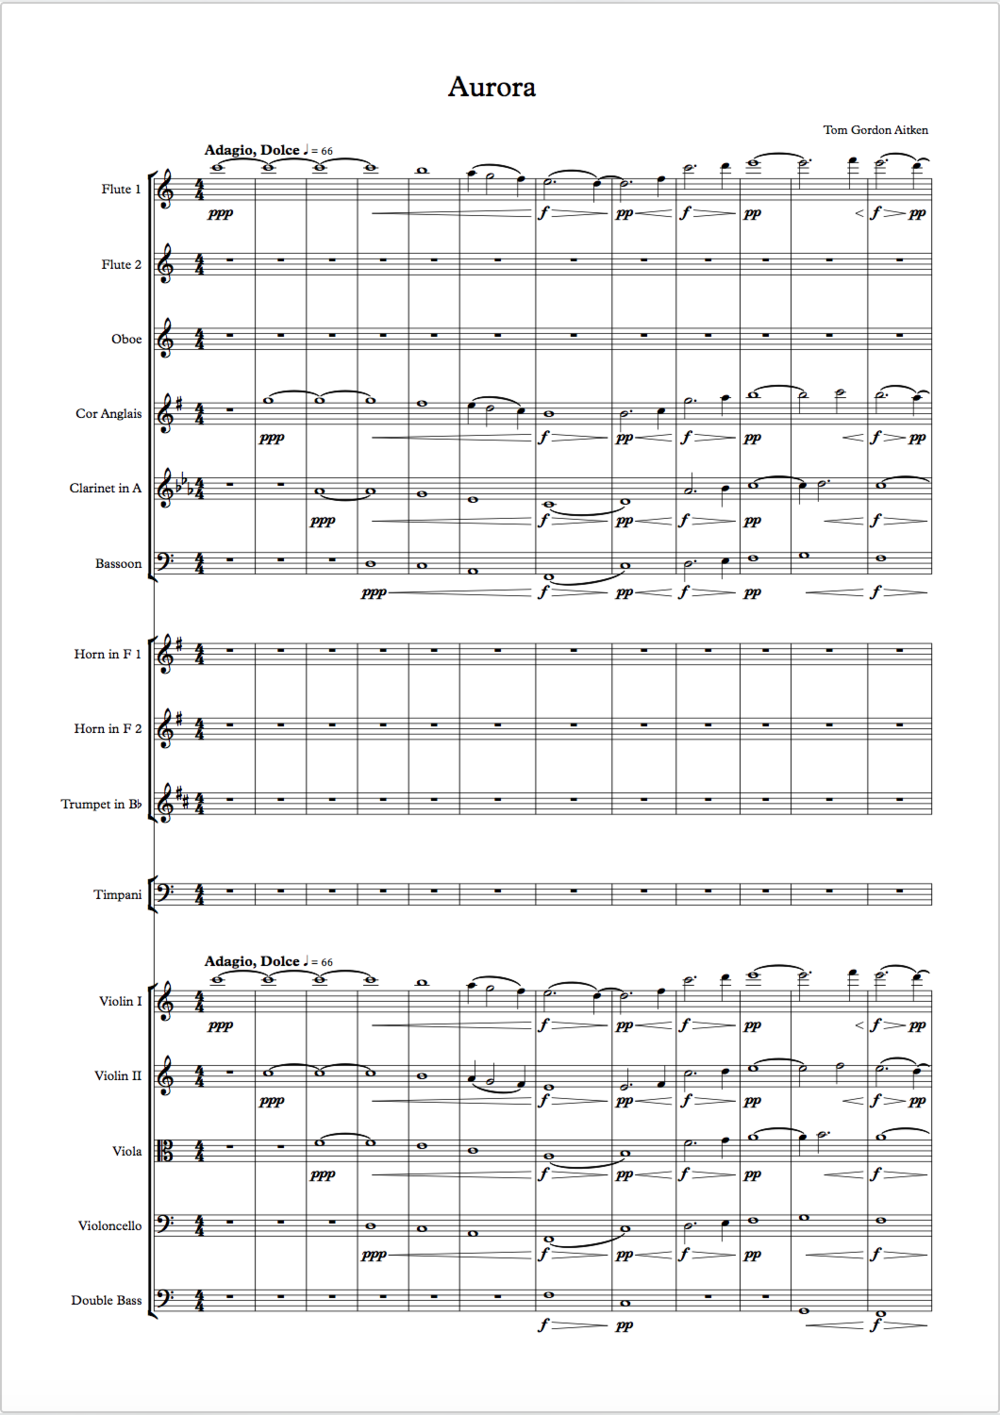 Click image for full score